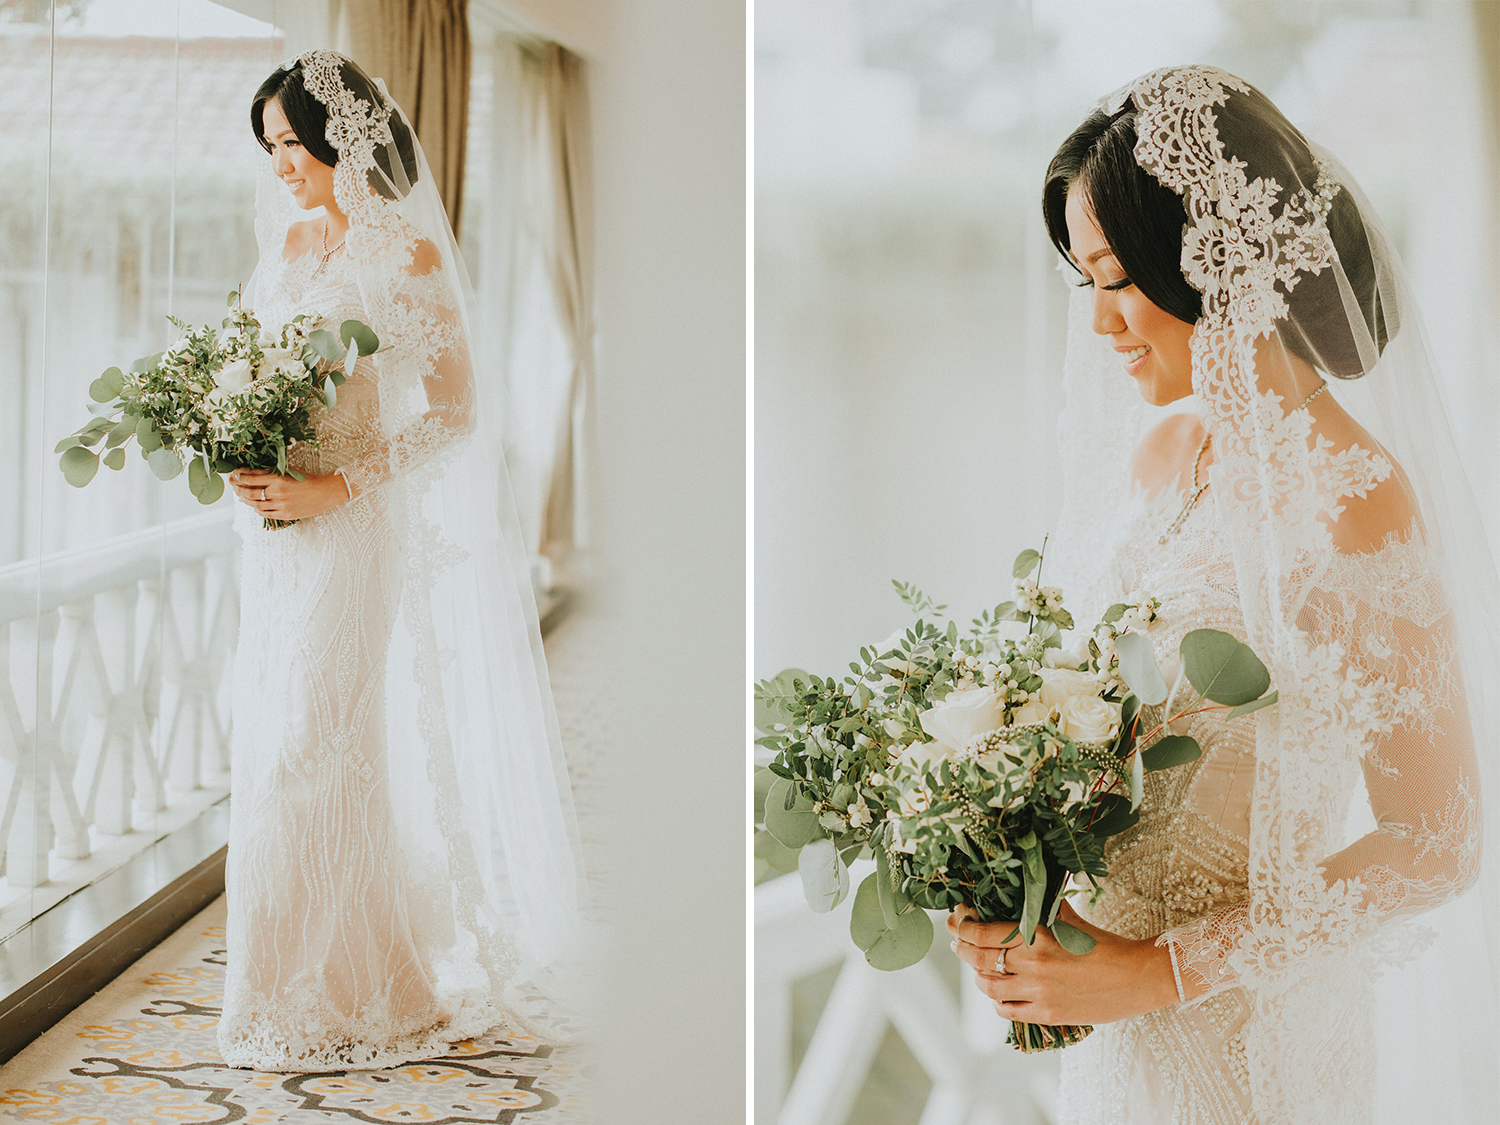 jakarta wedding-destination wedding-bali wedding photographer-diktatphotography-kadek artayasa-jason+devi-53